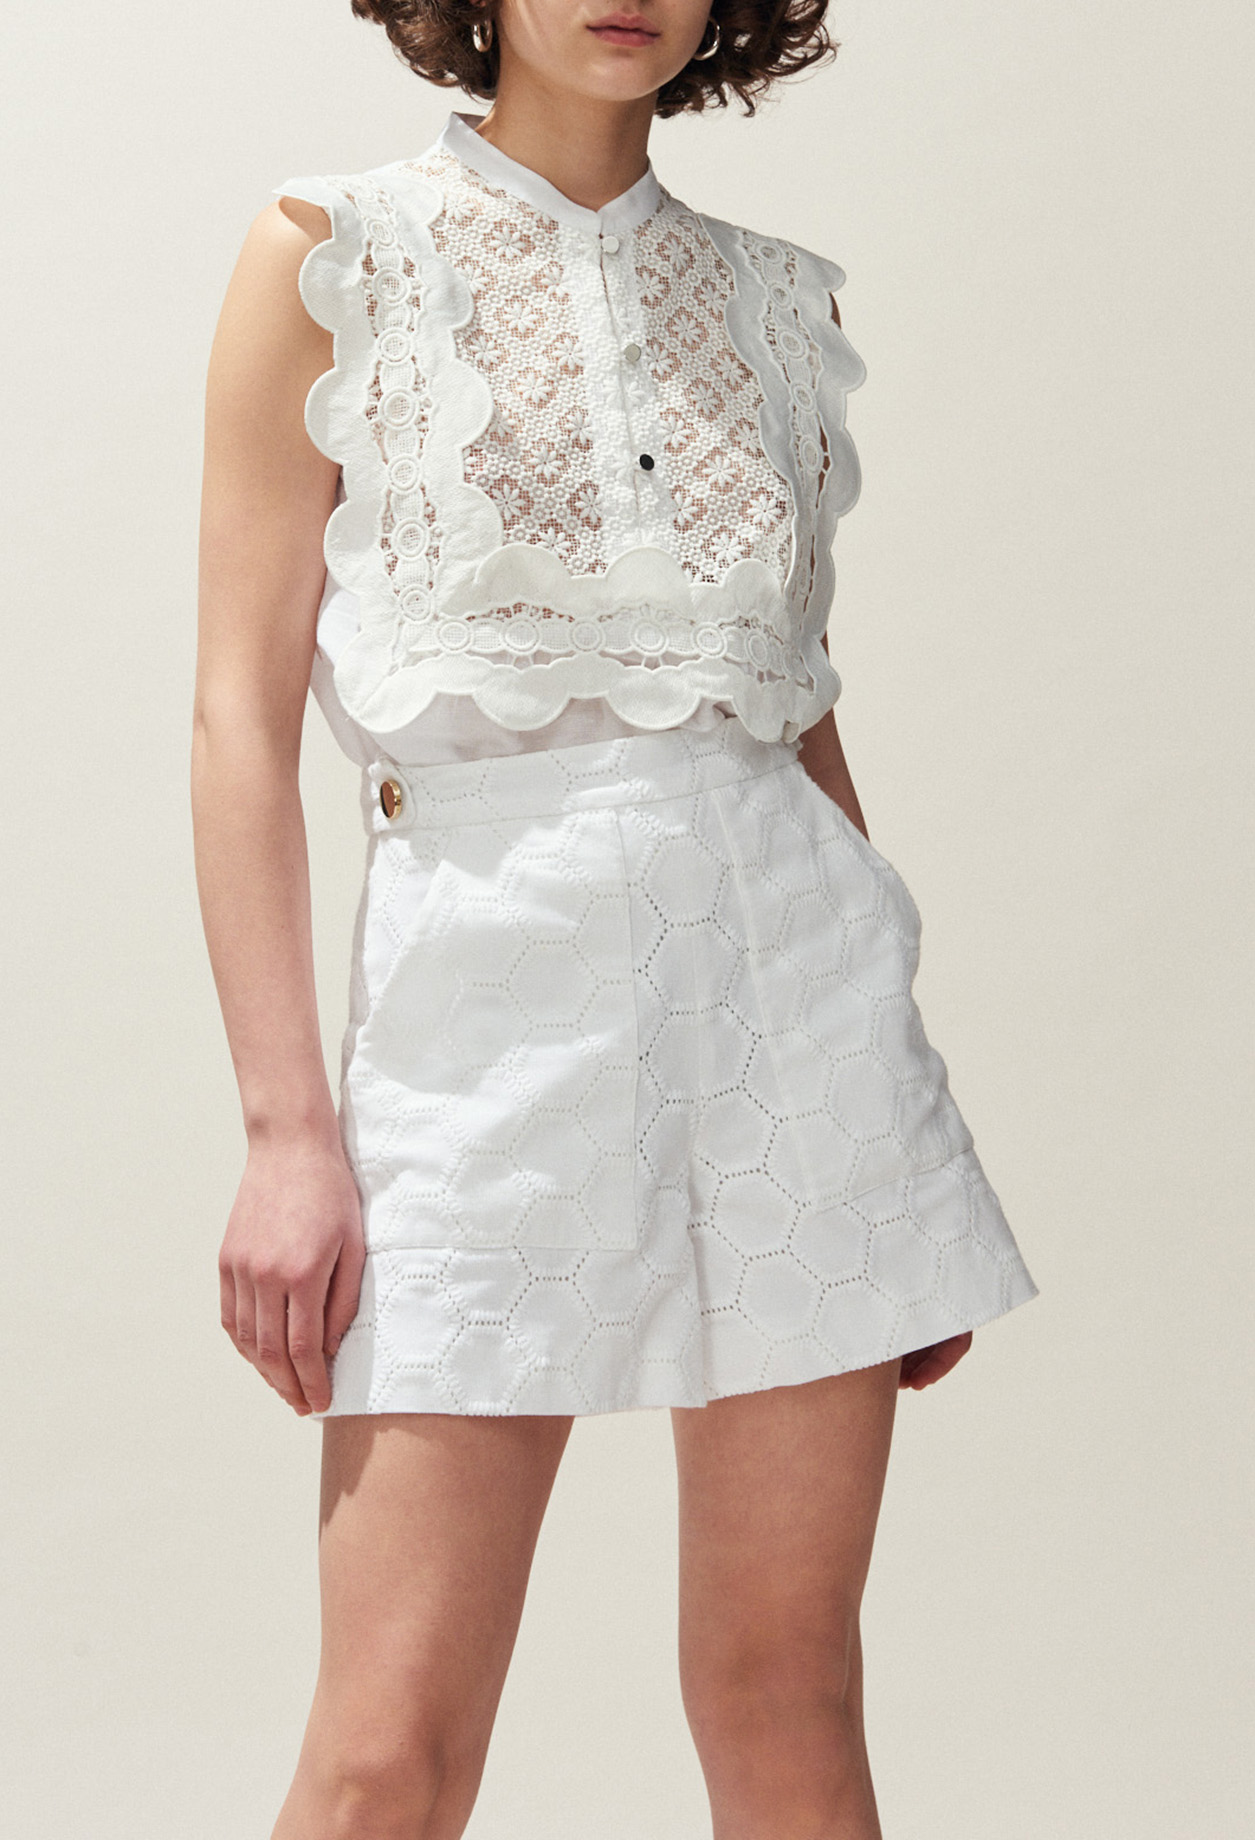 Sleeveless top with lace inserts